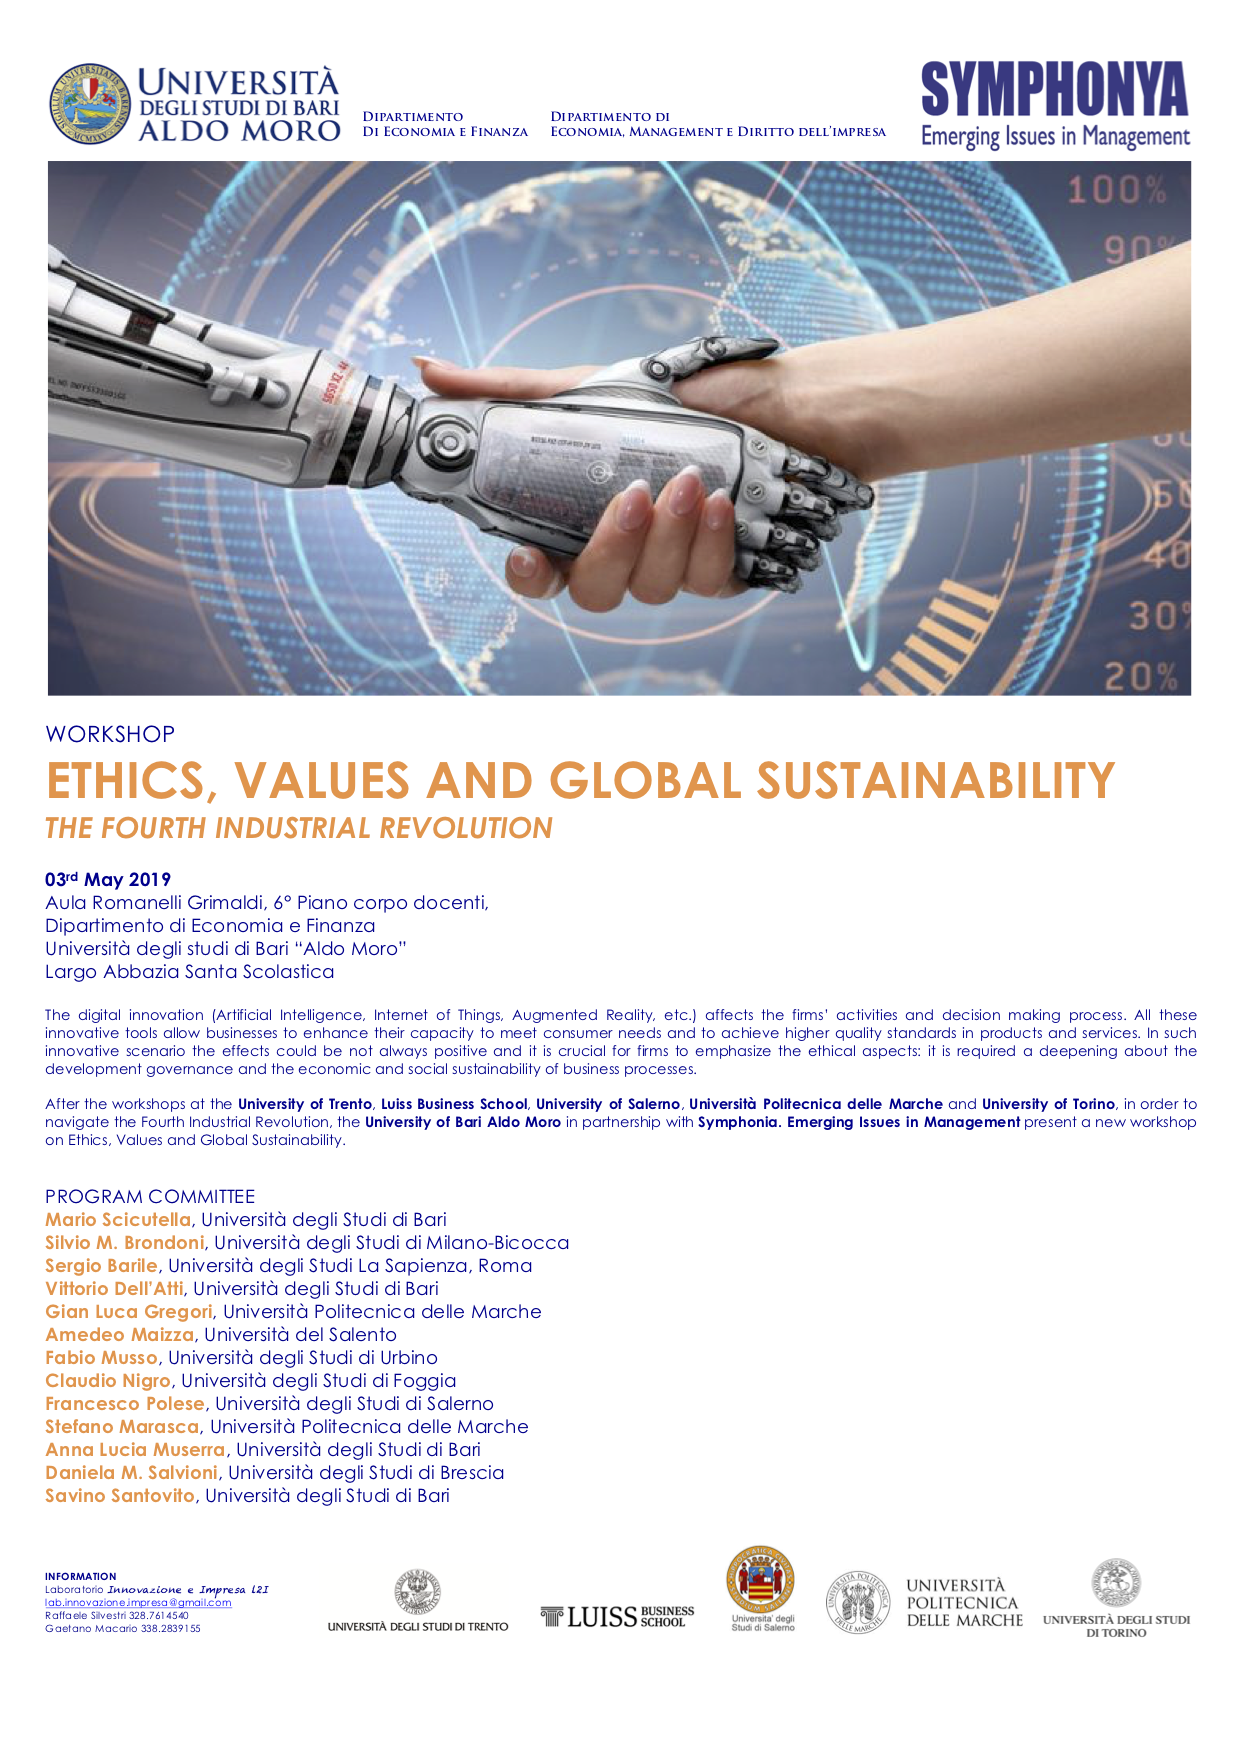 Ethics, Values and Global Sustainability